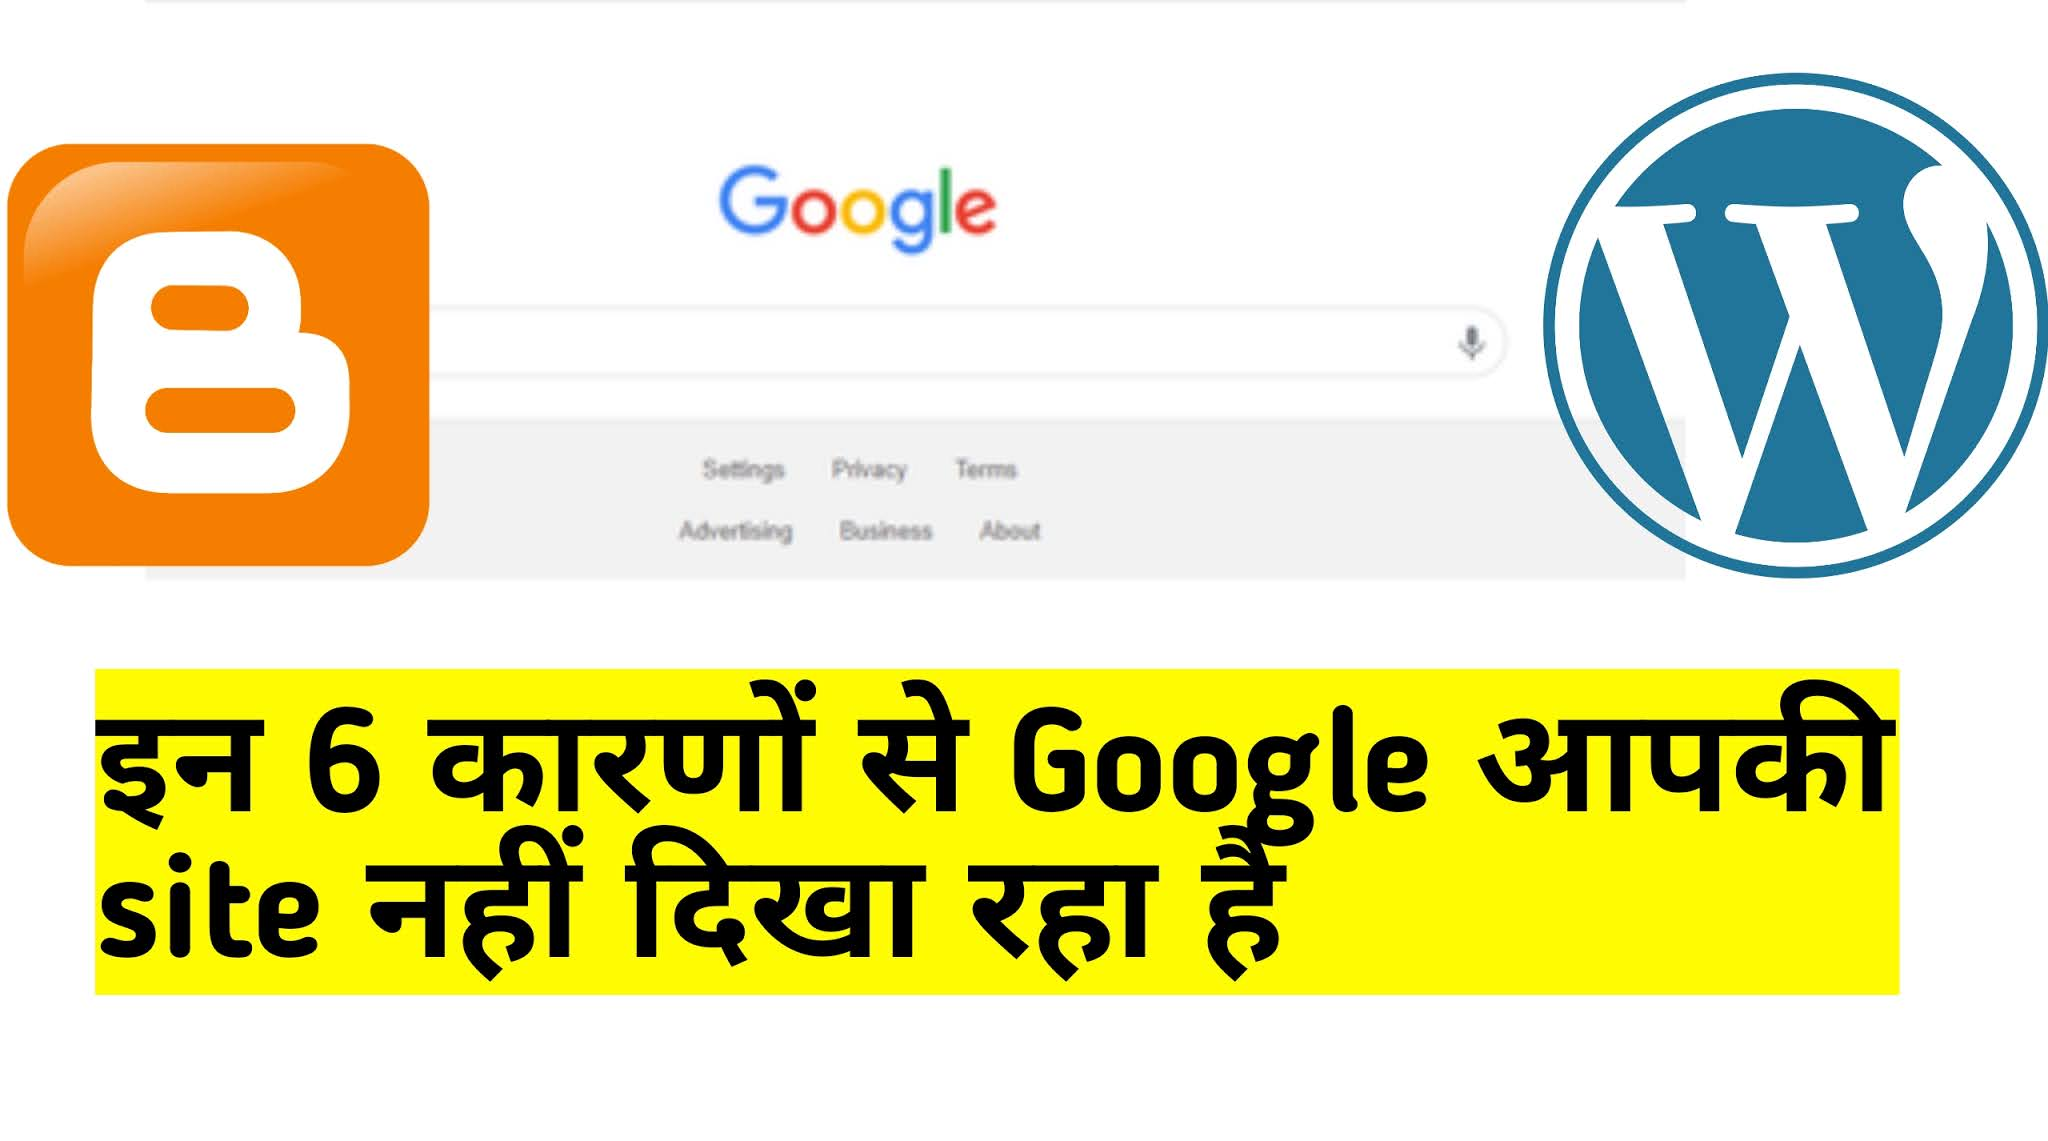 why my site in not showing on search in hindi